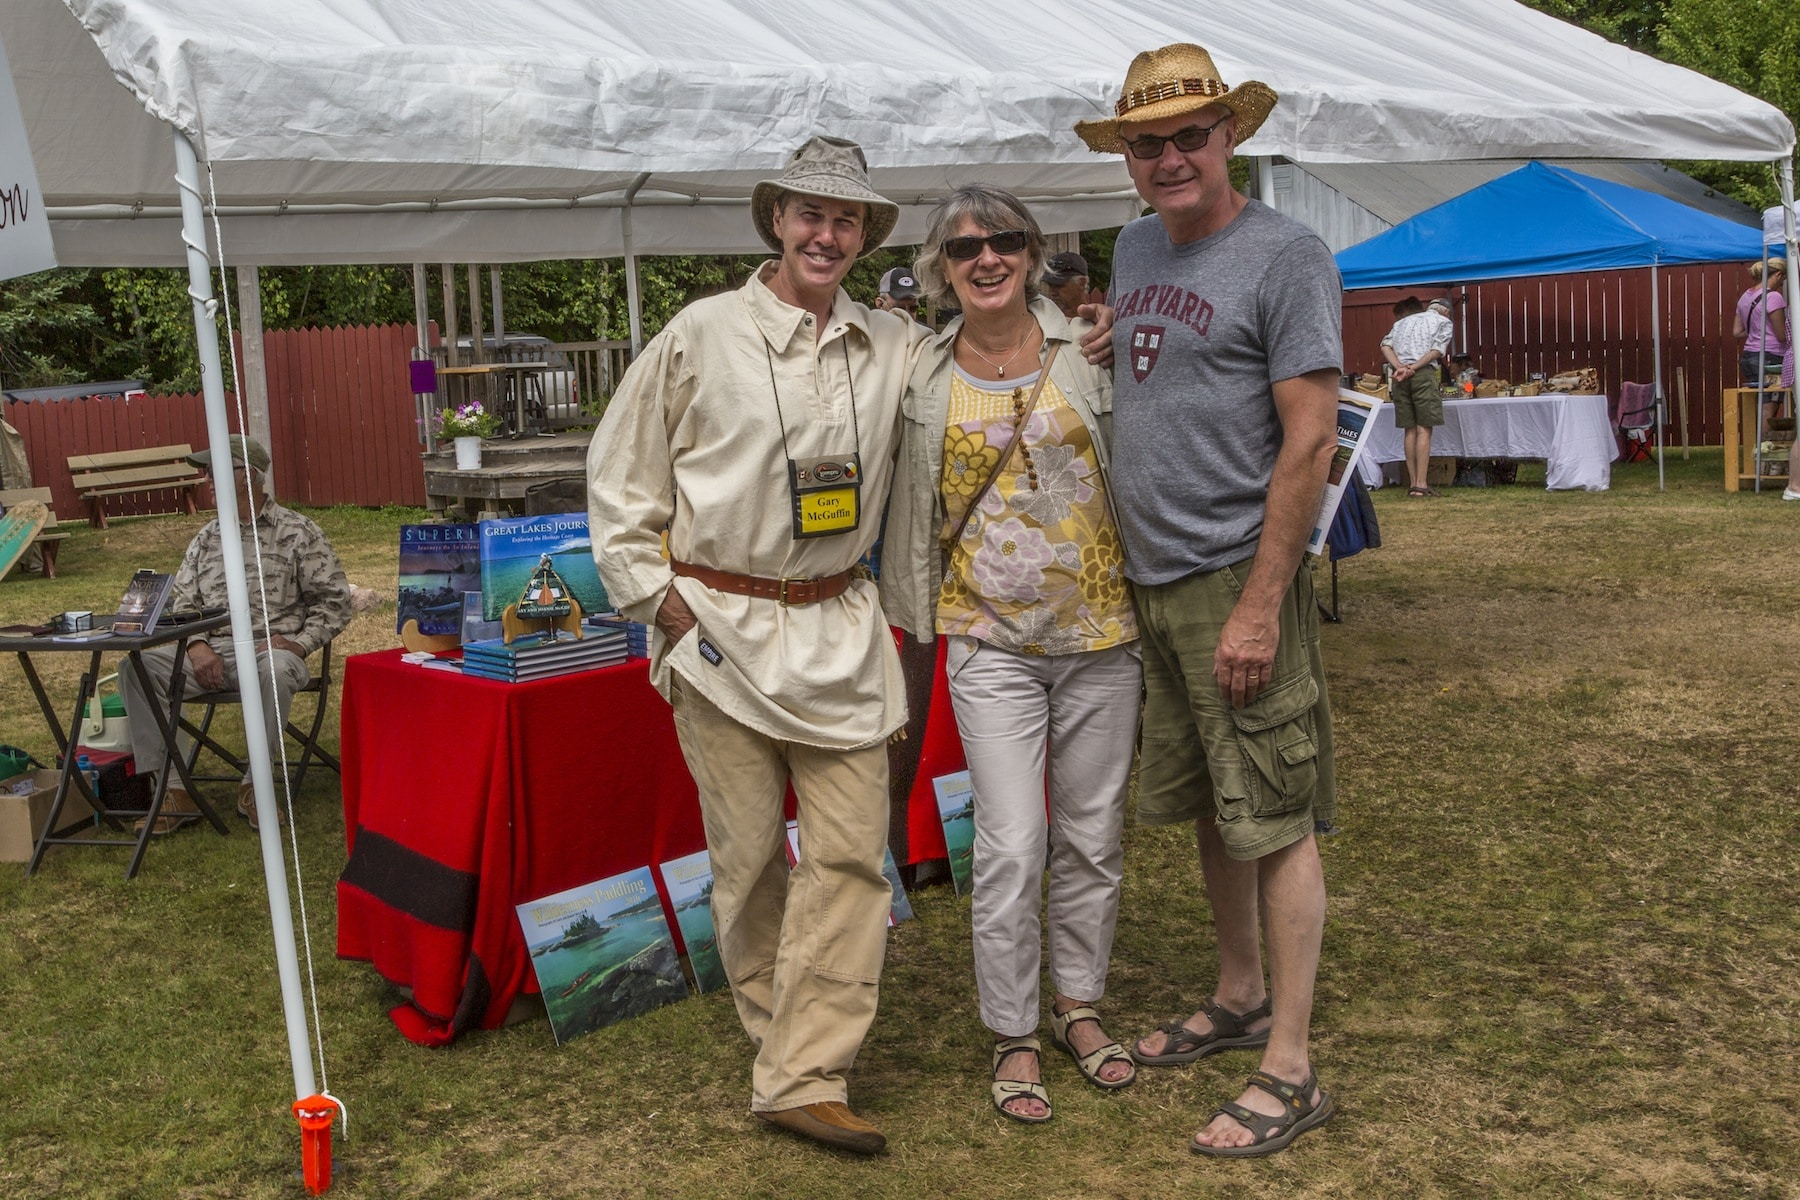 Geri and Enzo Turchet were among the many local friends that dropped by to visit our display at the Art on the Bay event at Batchawana Bay on Sat August 8th